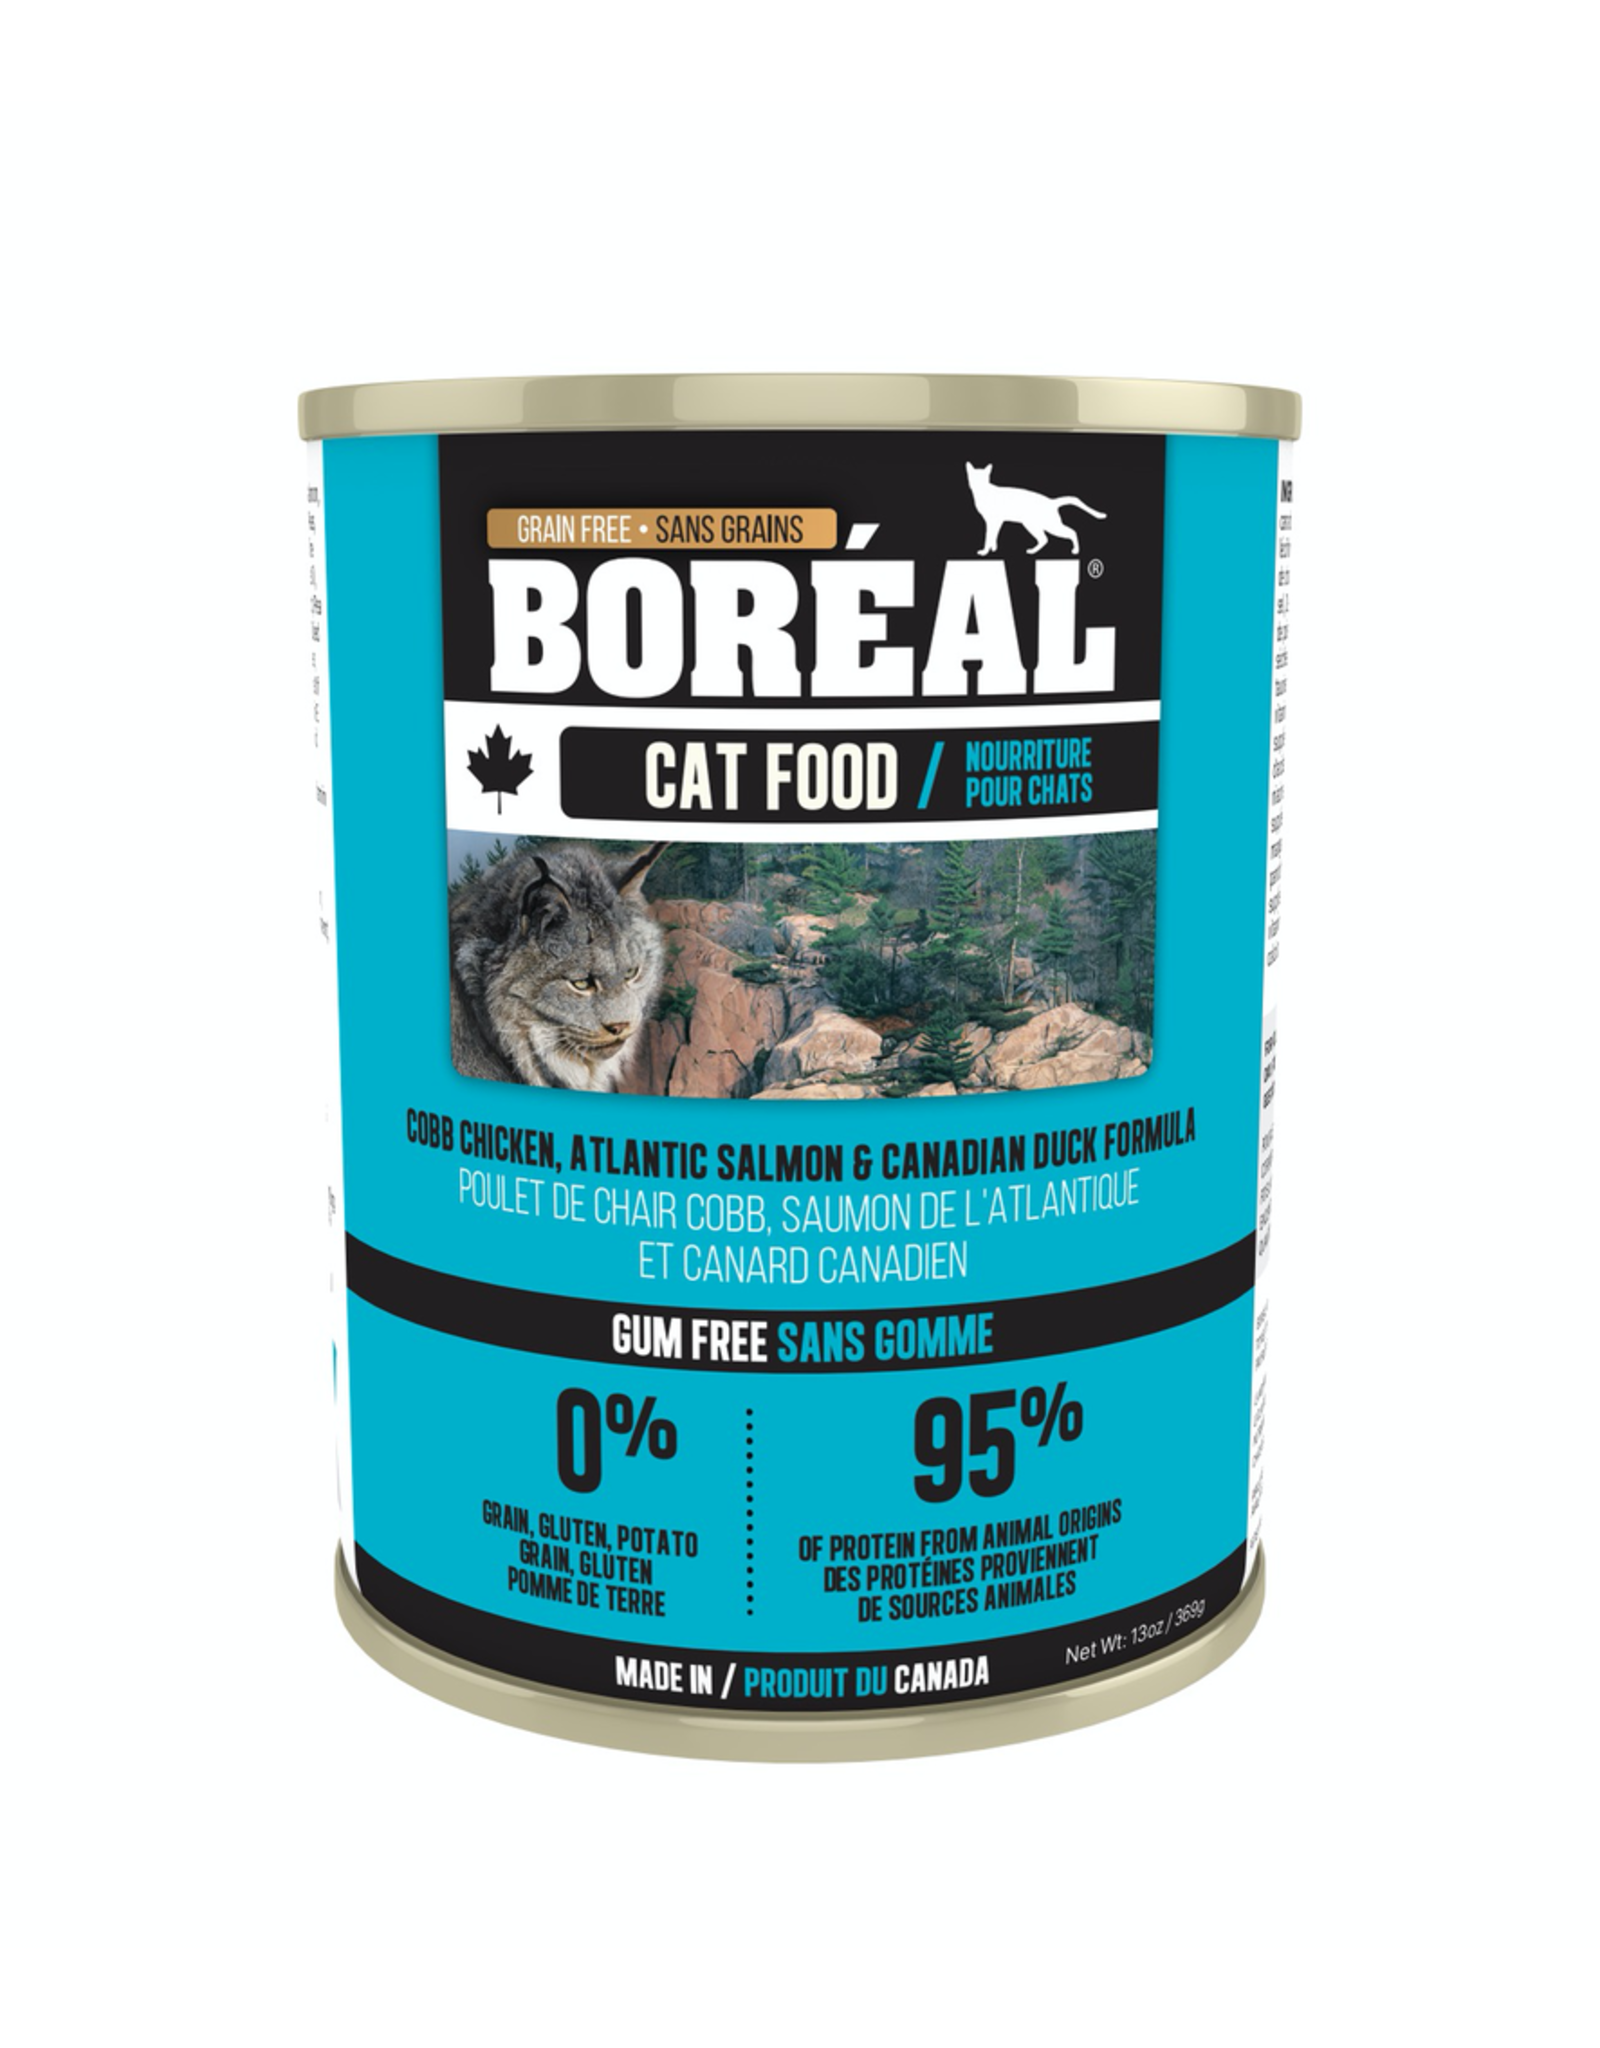 BOREAL BOREAL Cat Cobb Chicken, Atlantice Salmon & Canadian Duck 156g